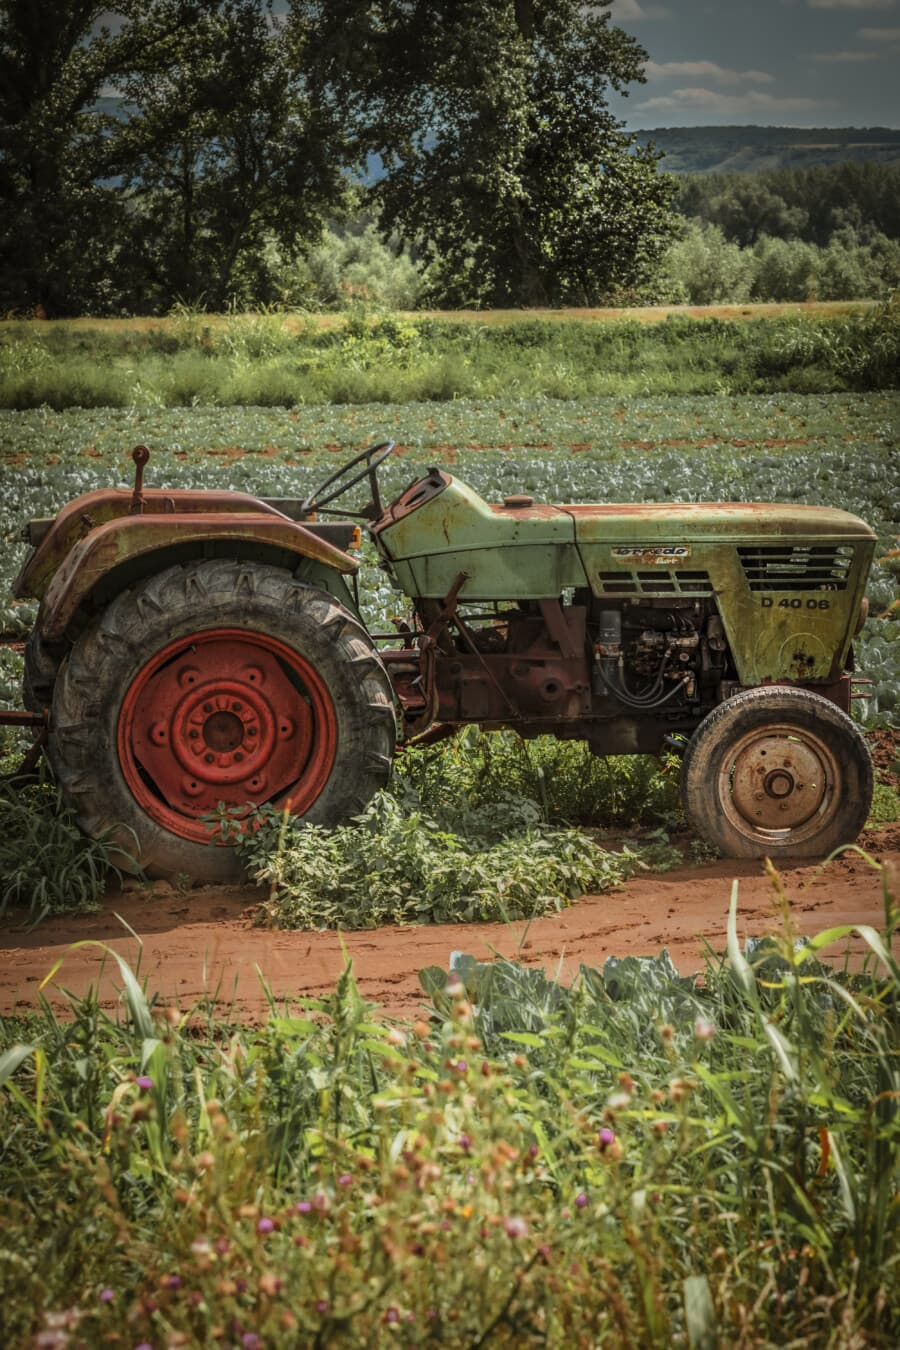 old, rust, tractor, agriculture, field work, machine, mechanization, side view, rural, equipment